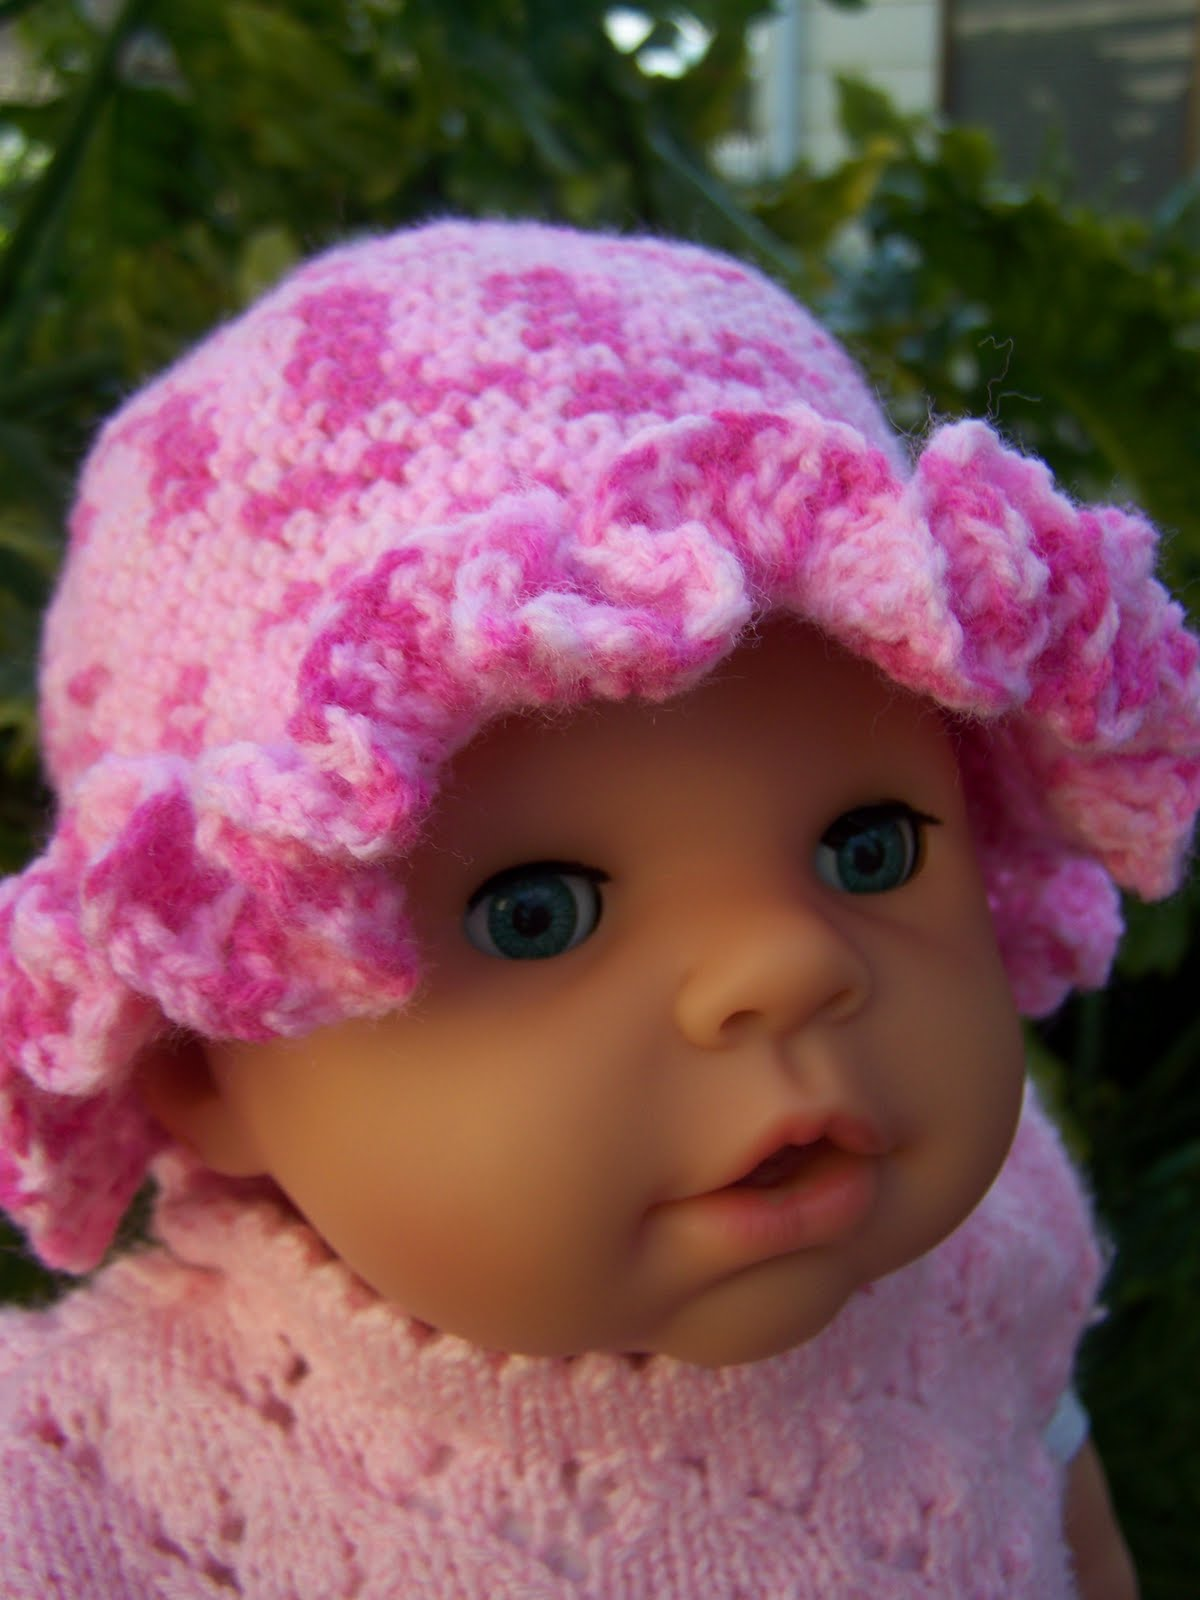 Crochet Pattern Central Baby Hats : Back in my corner (with crayons): Crocheted Baby Ruffle Hat.